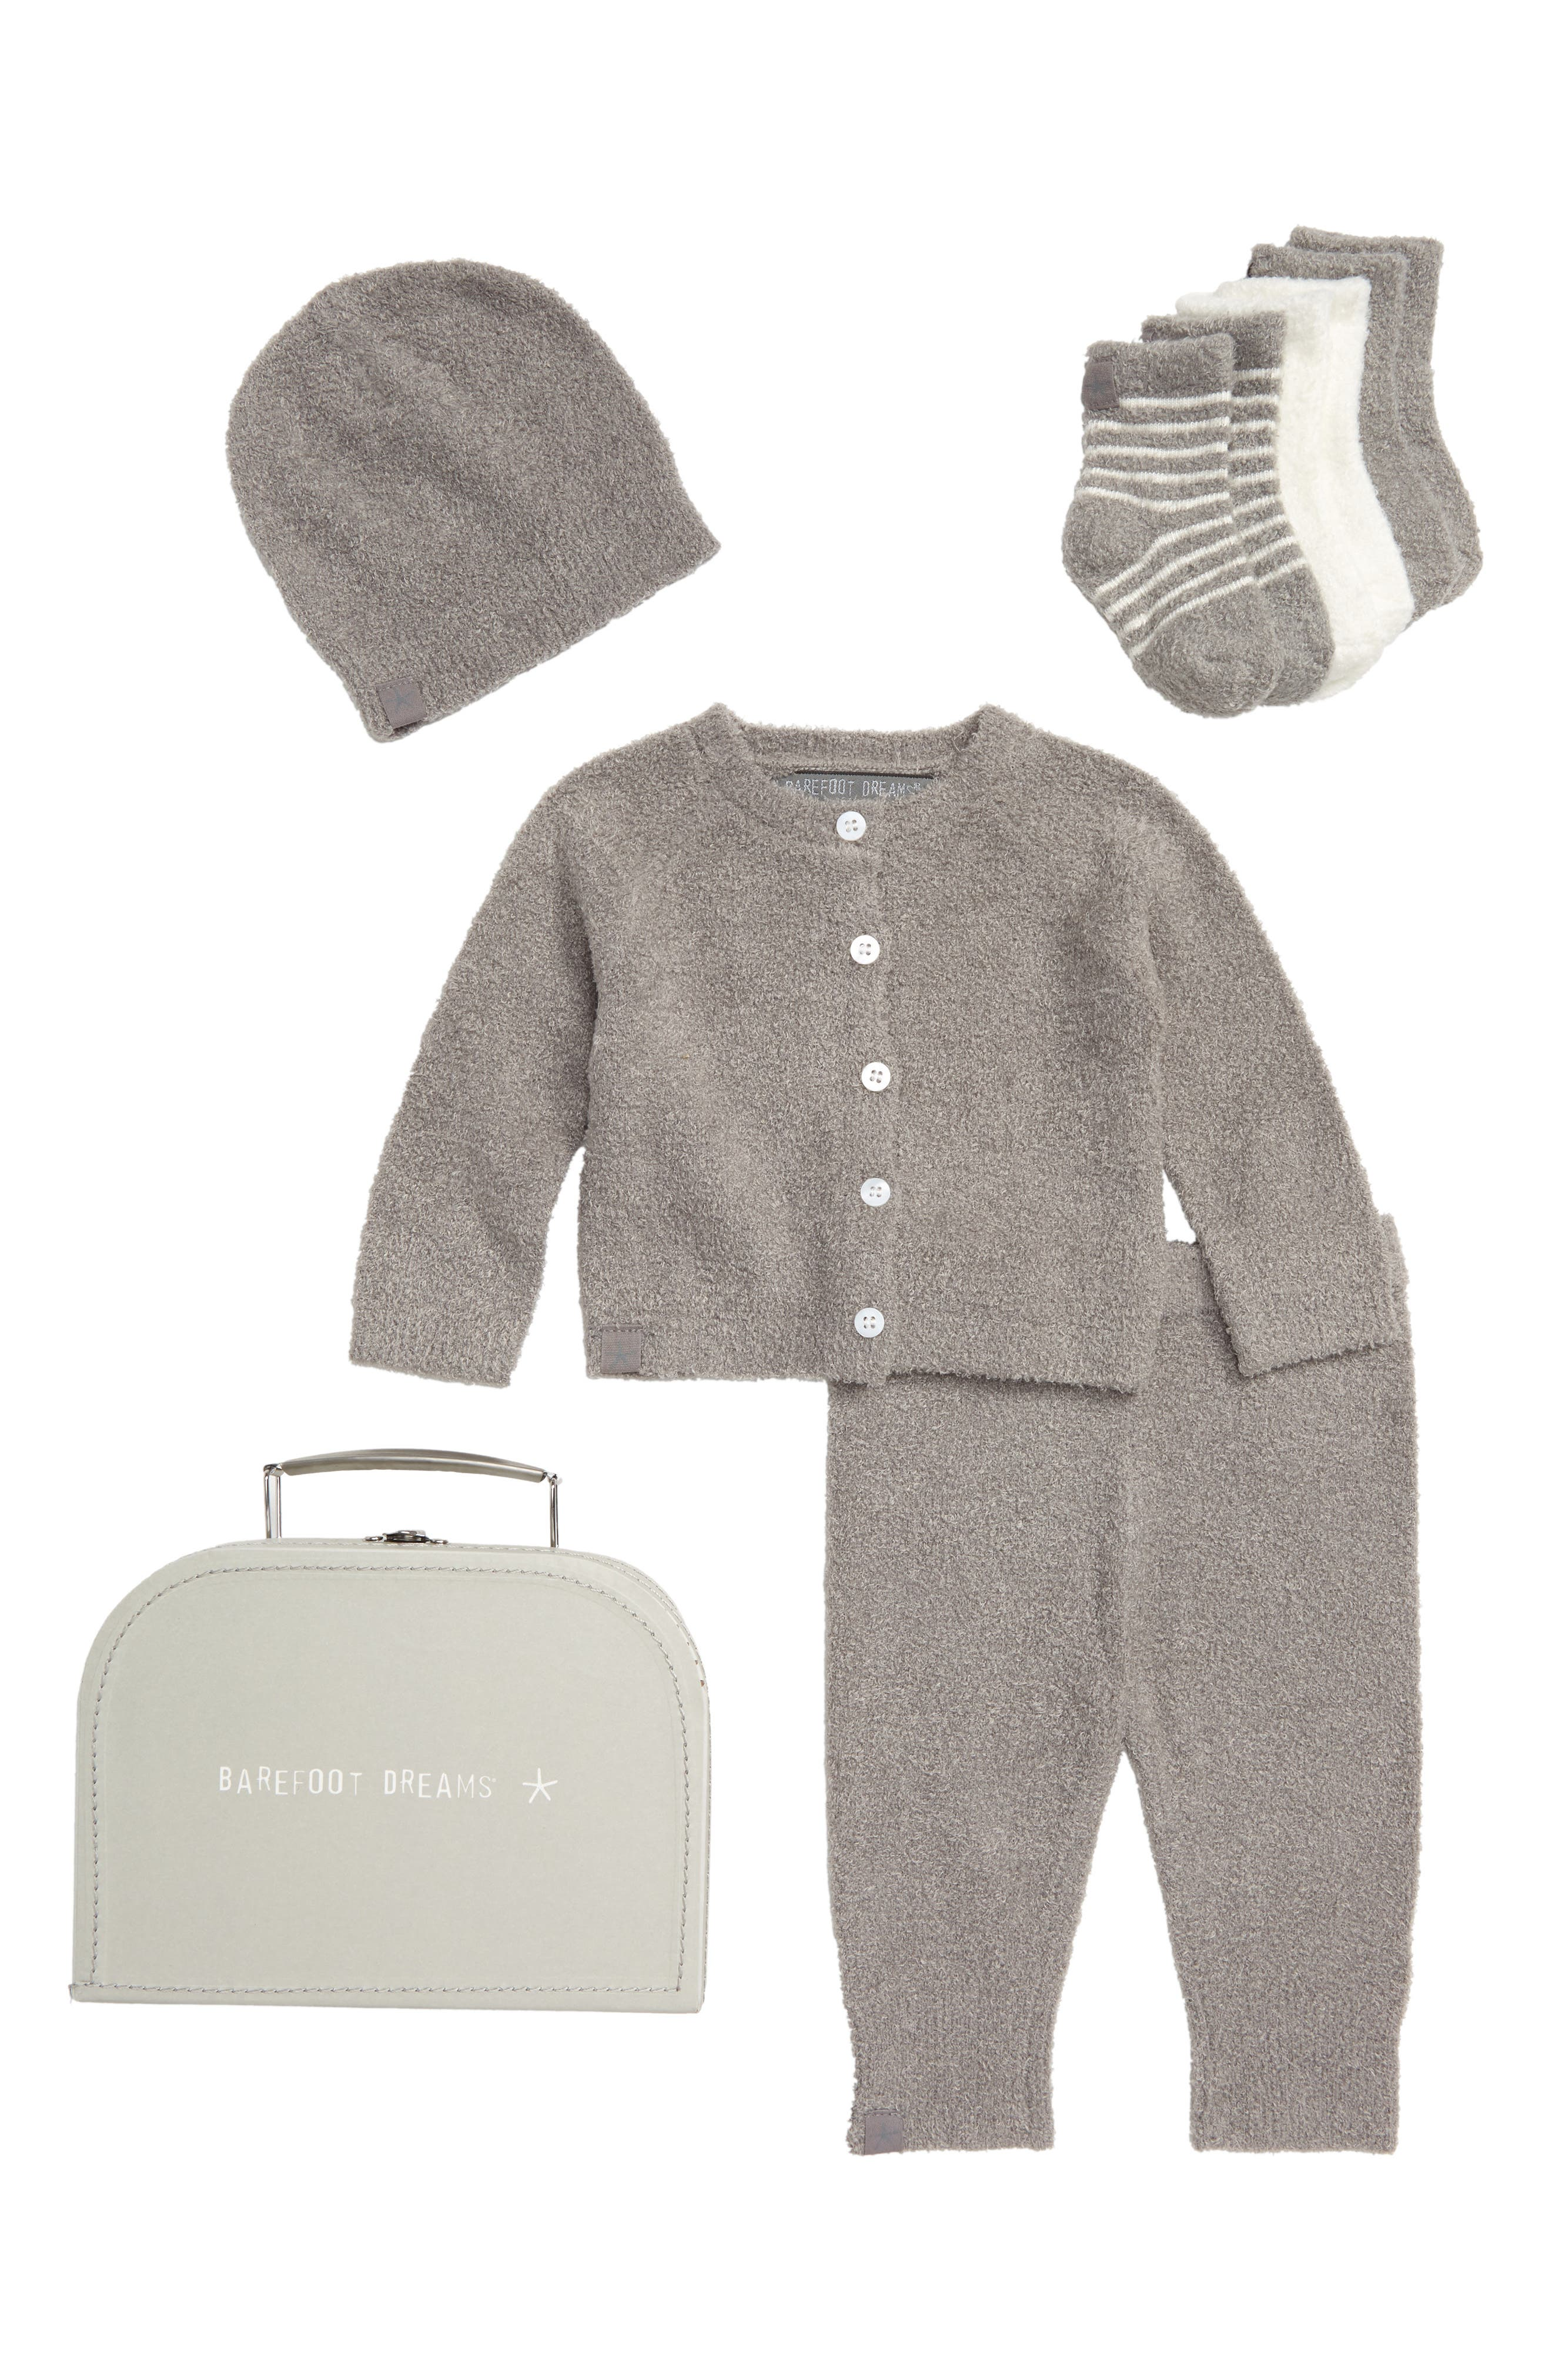 CozyChic<sup>®</sup> Lite Classic Cardigan, Pants, Socks, Beanie & Suitcase Set,                             Main thumbnail 1, color,                             PEWTER